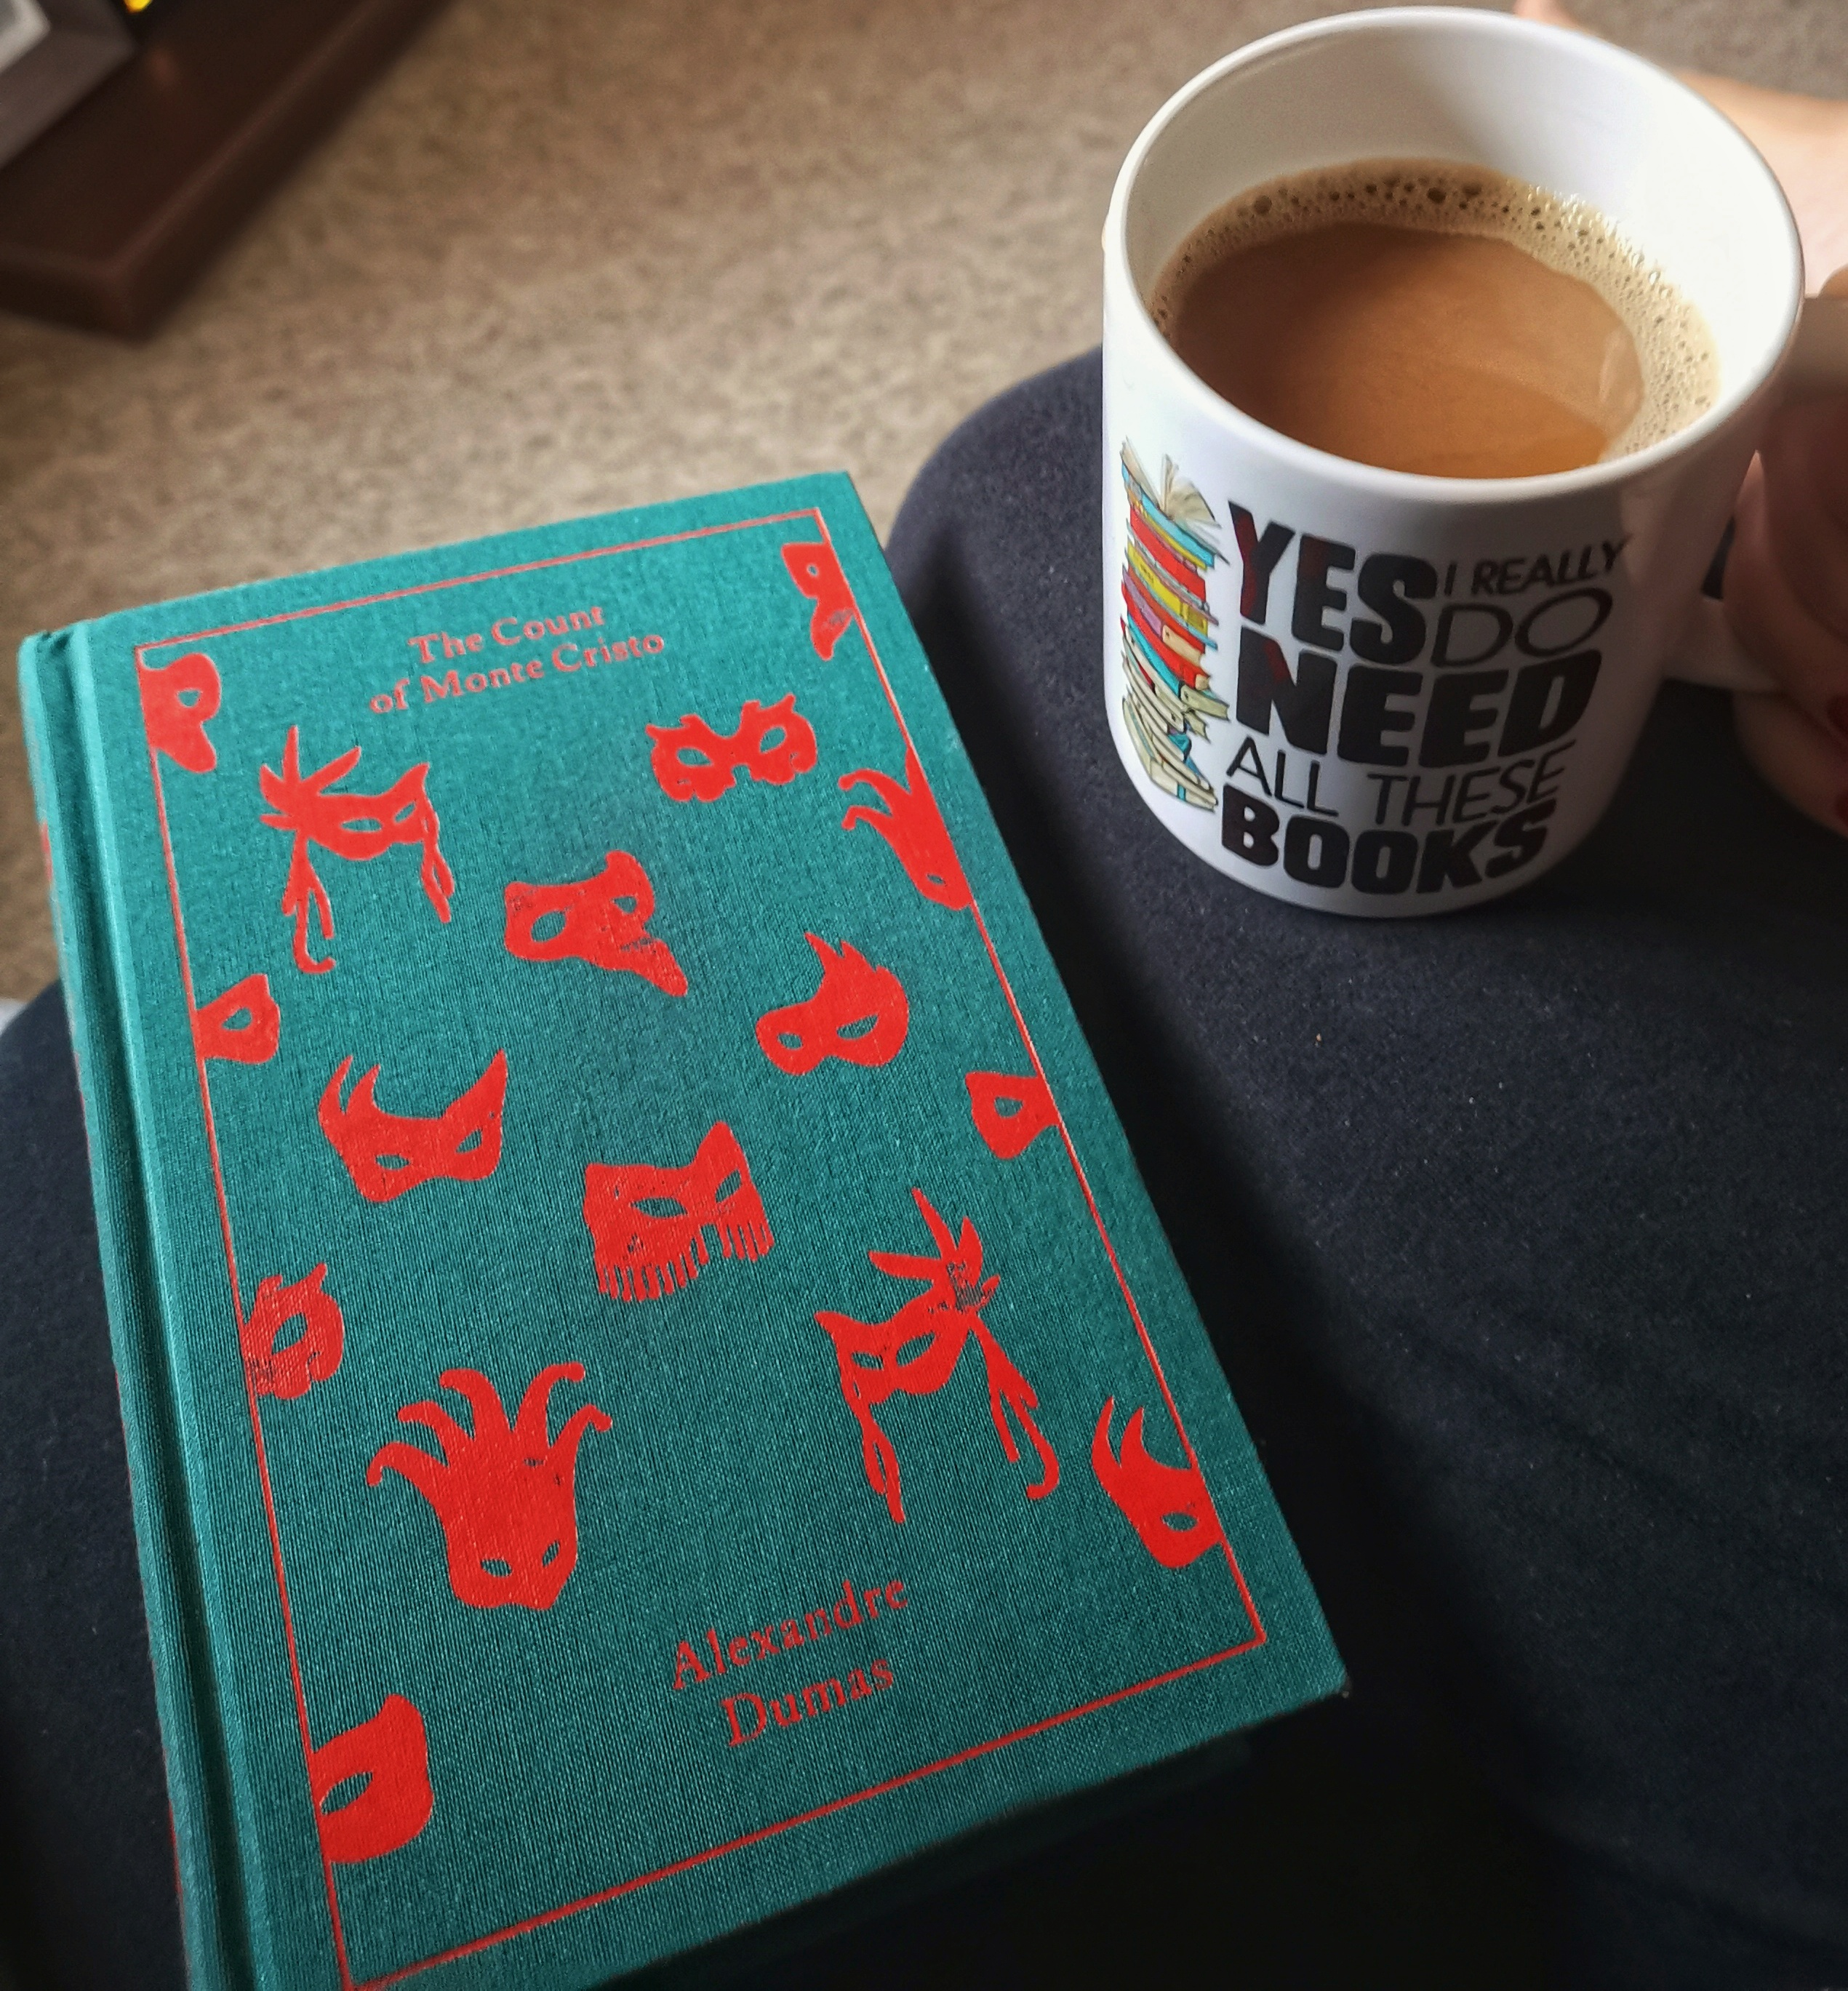 the cloth bound classic The Count of Monte Cristo and a mug of coffee